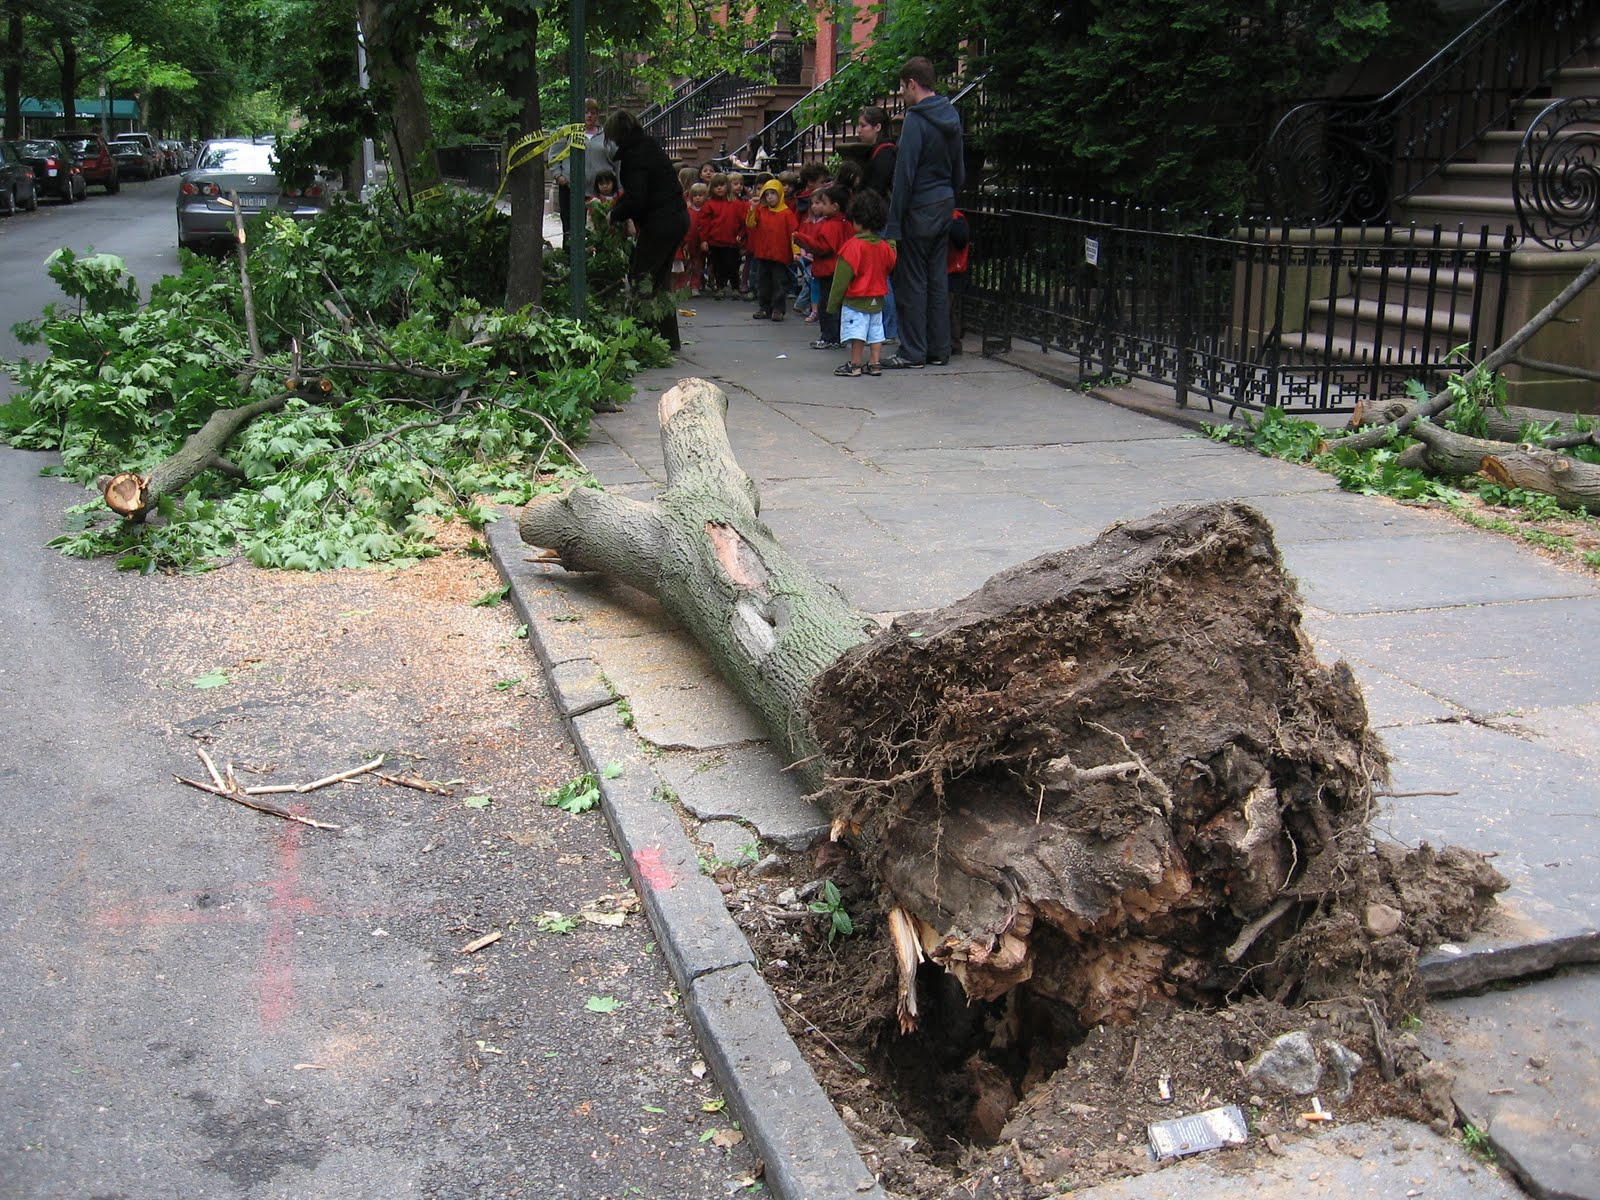 Research Paper Topics About Human Resources Tree Down Monroe MKMetz Index?id